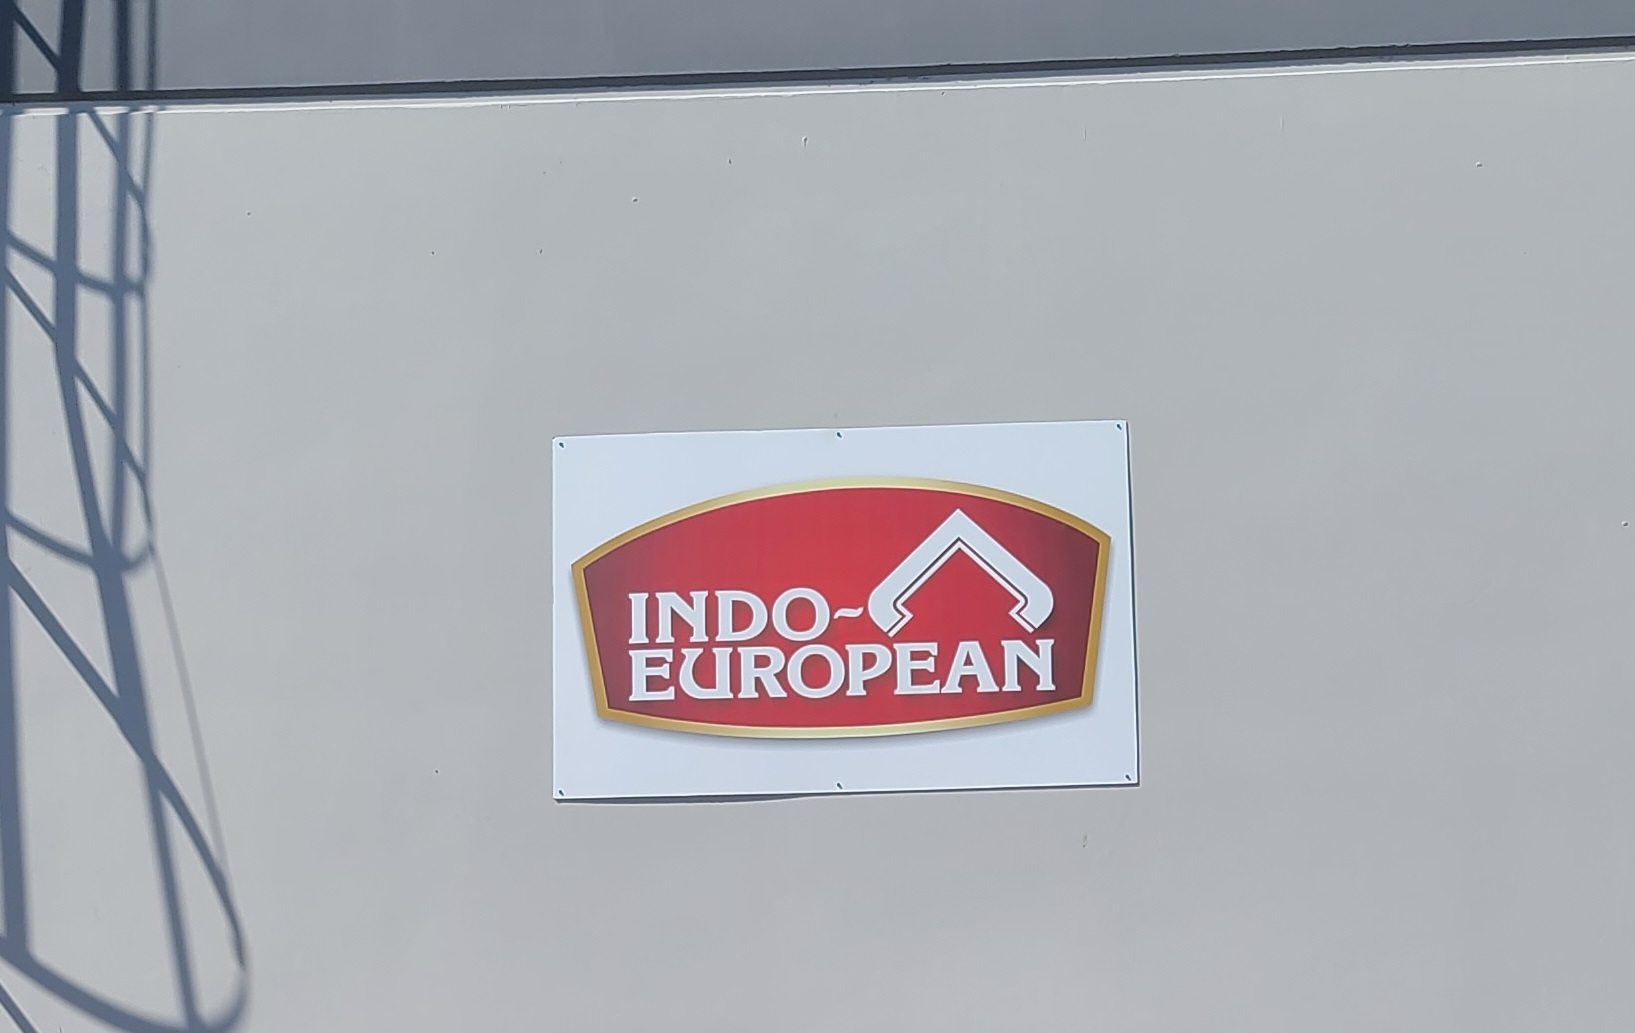 Our custom metal business sign package for Indo-European's Commerce facility loading bay.